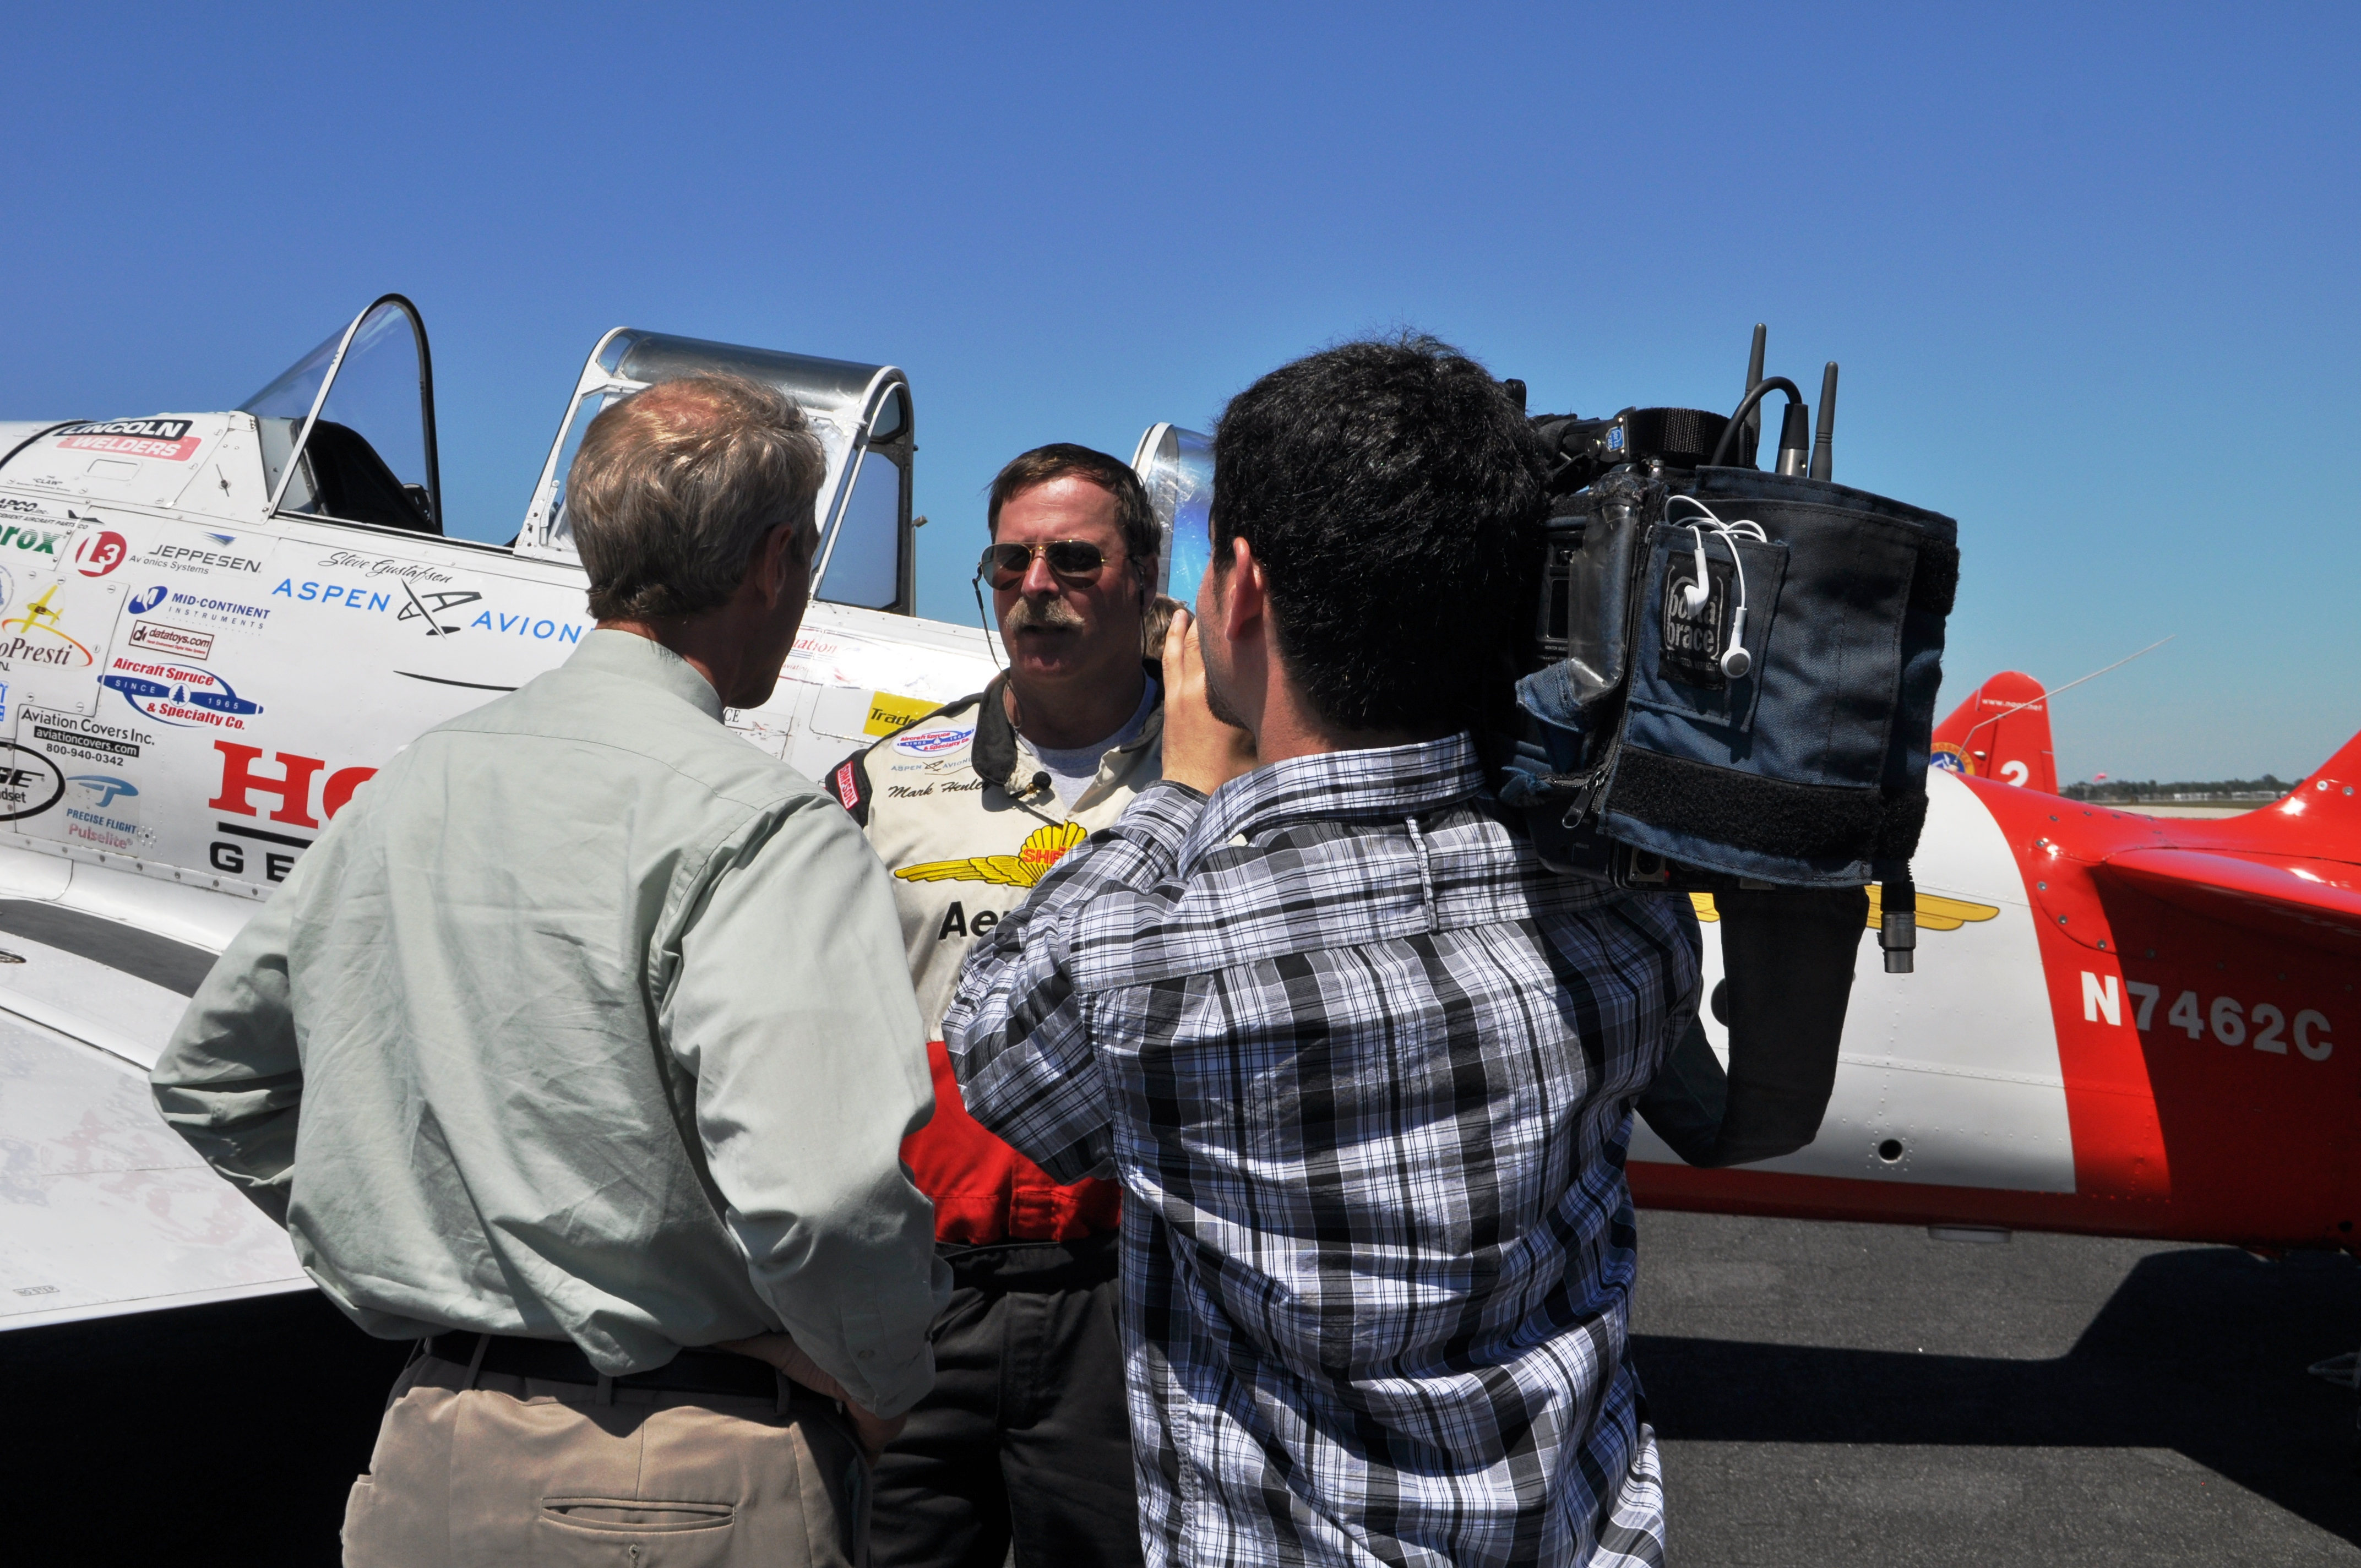 The Florida International Air Show in Punta Gorda, Fla., Holds a Media Day Every Year Prior to the Show